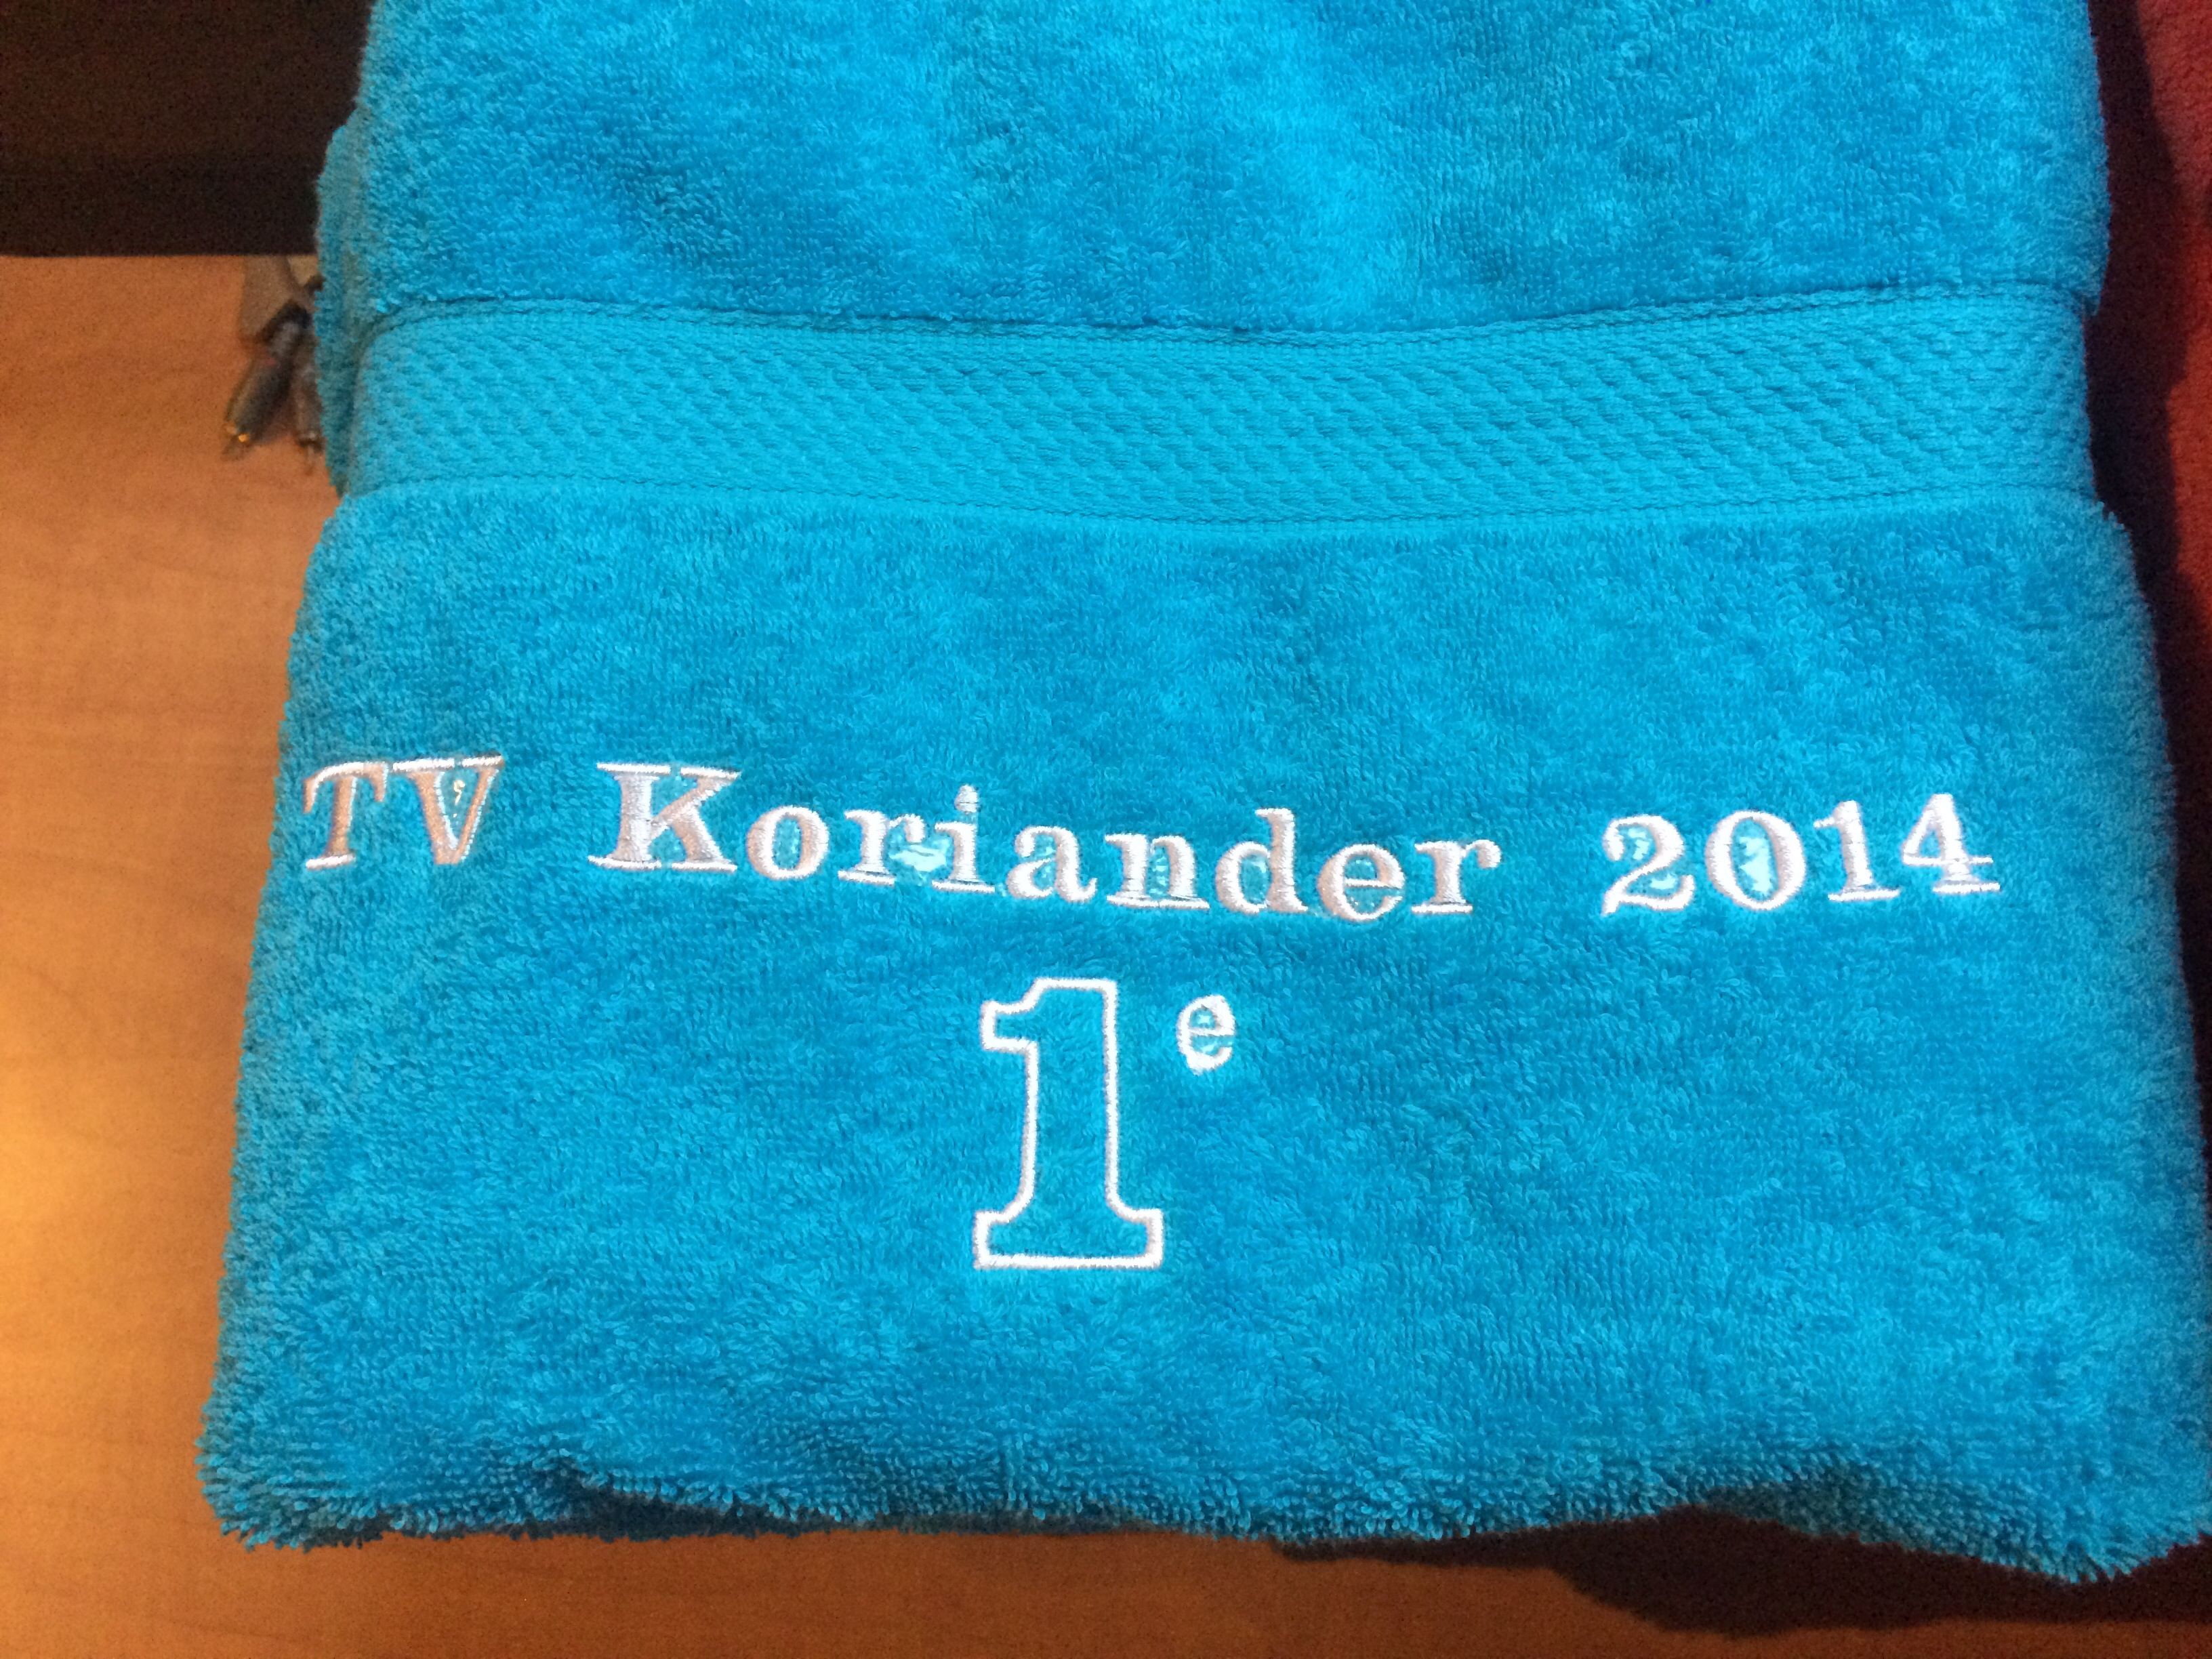 Handdoek Tennisvereniging